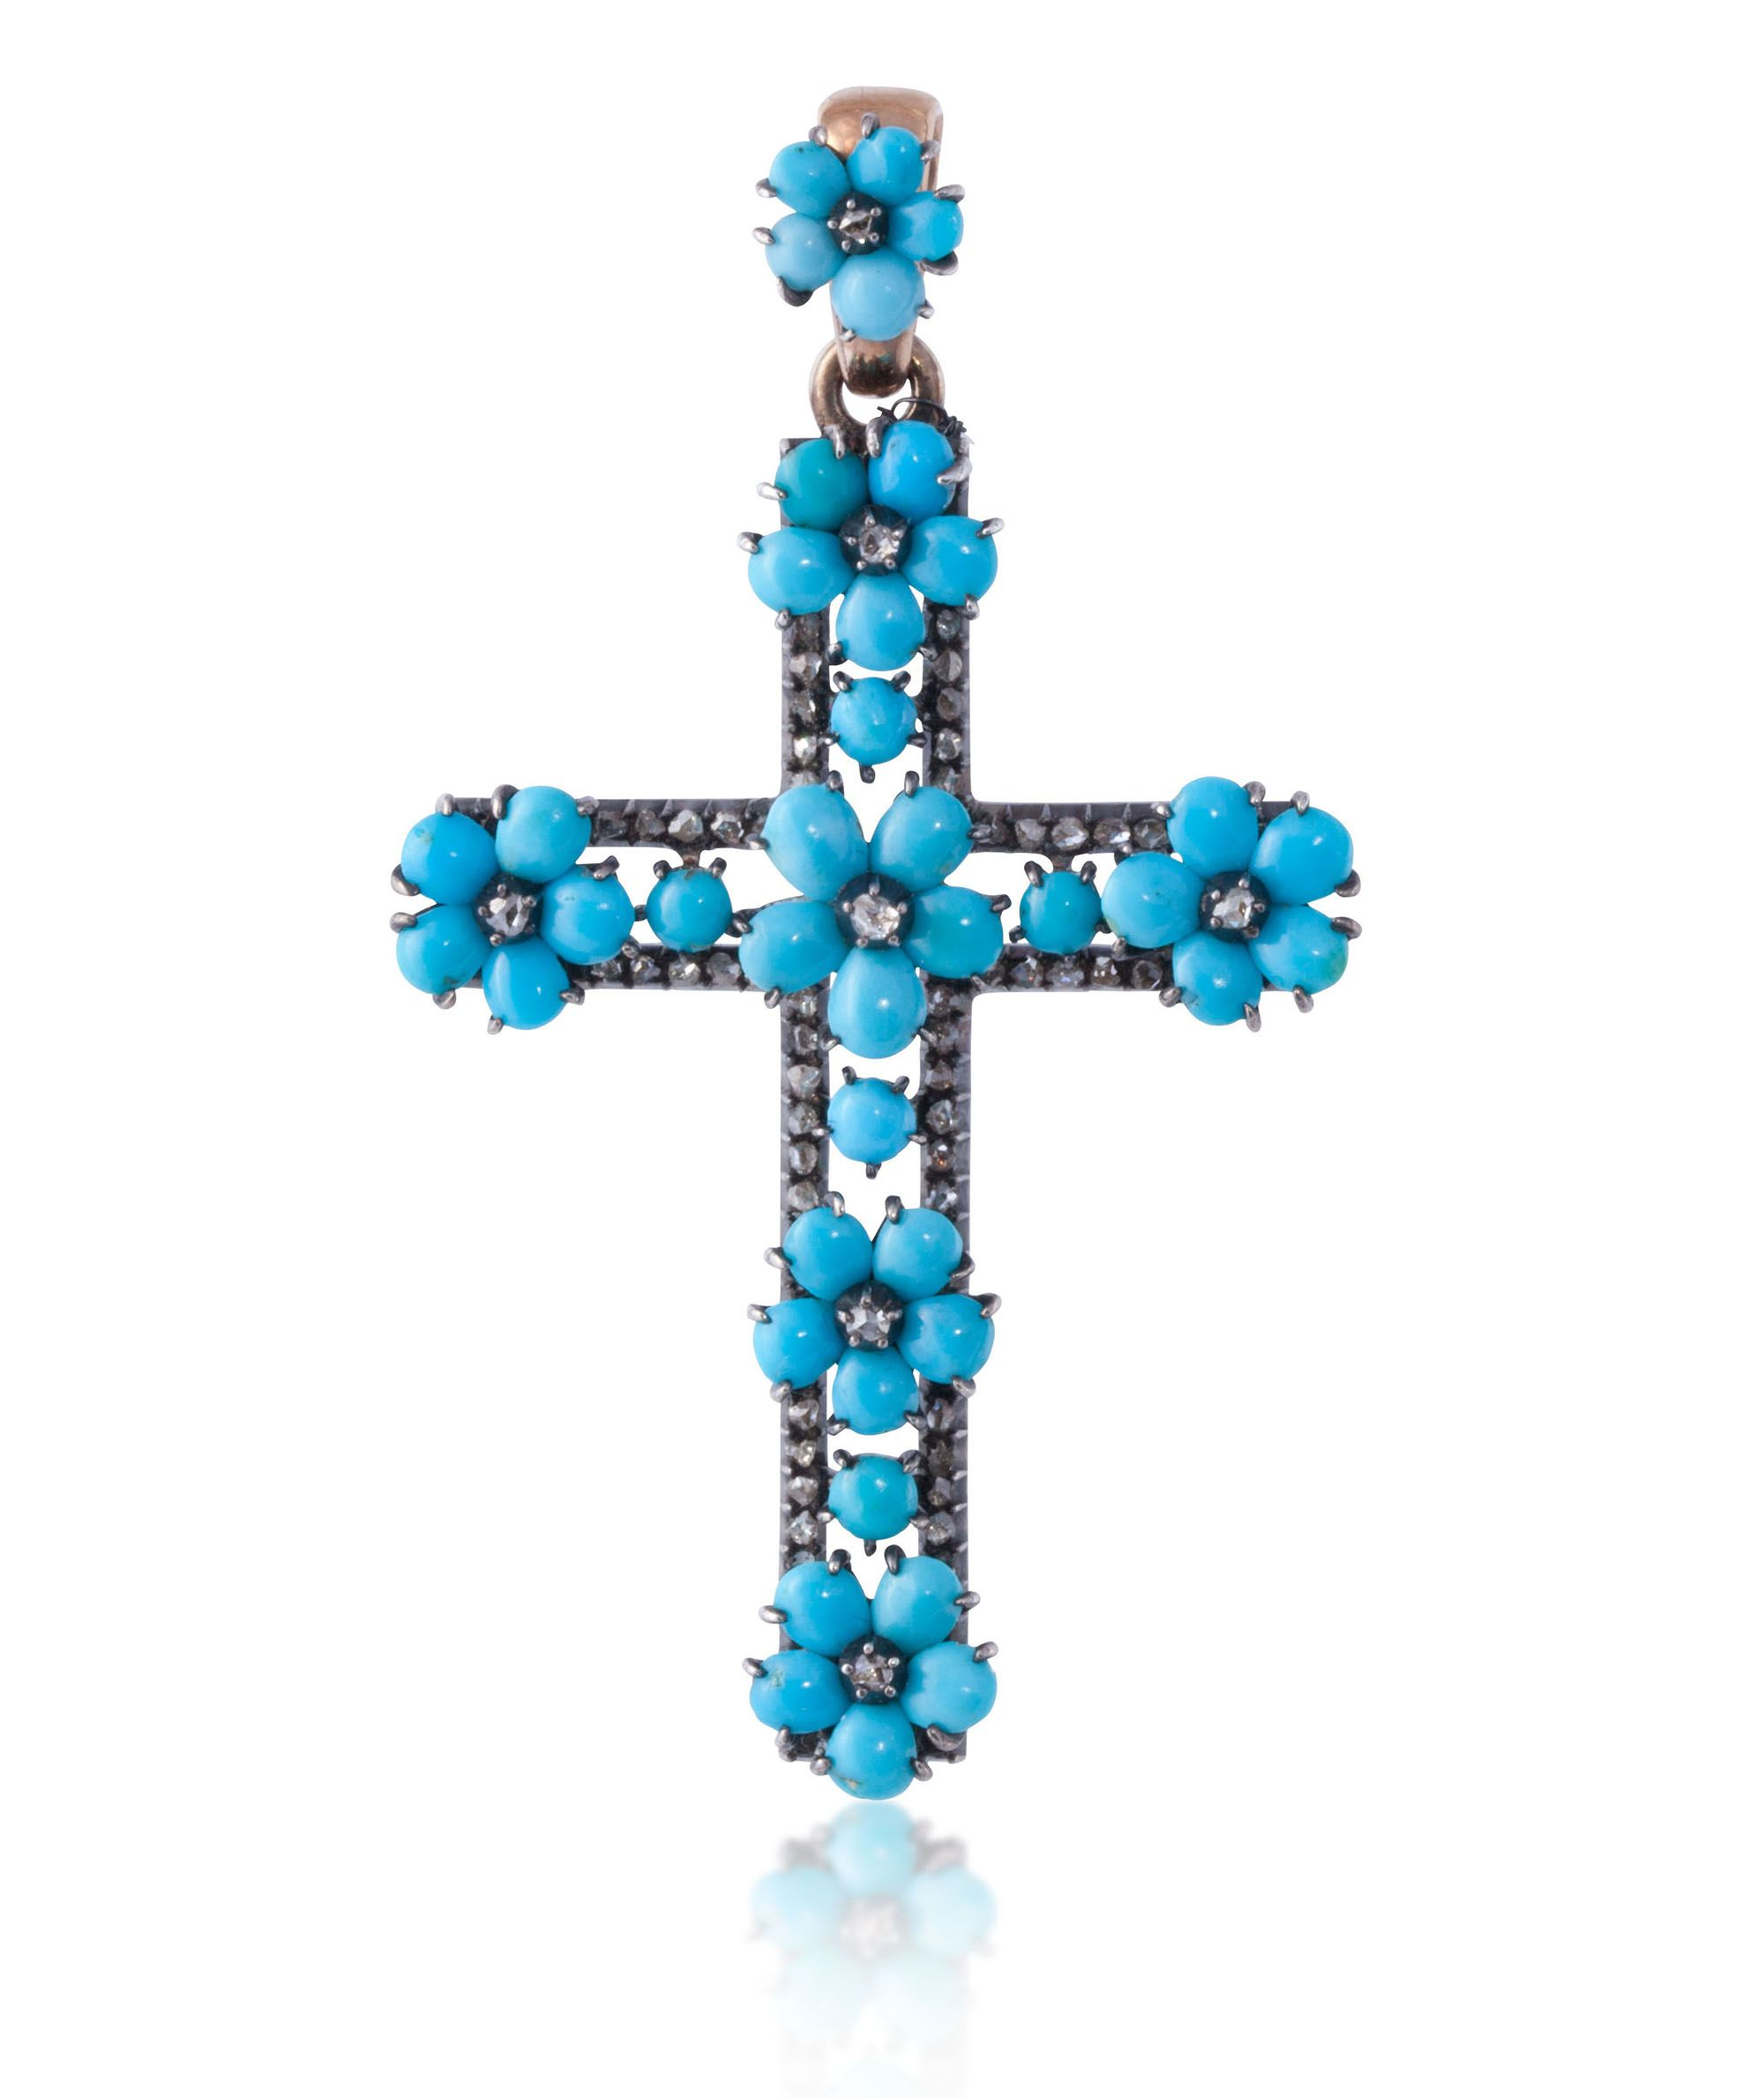 ANTIQUE TURQUOISE ENGLISH CROSS c1880 SET IN YELLOW GOLD AND SILVER I William Noble | Estate Jewelry